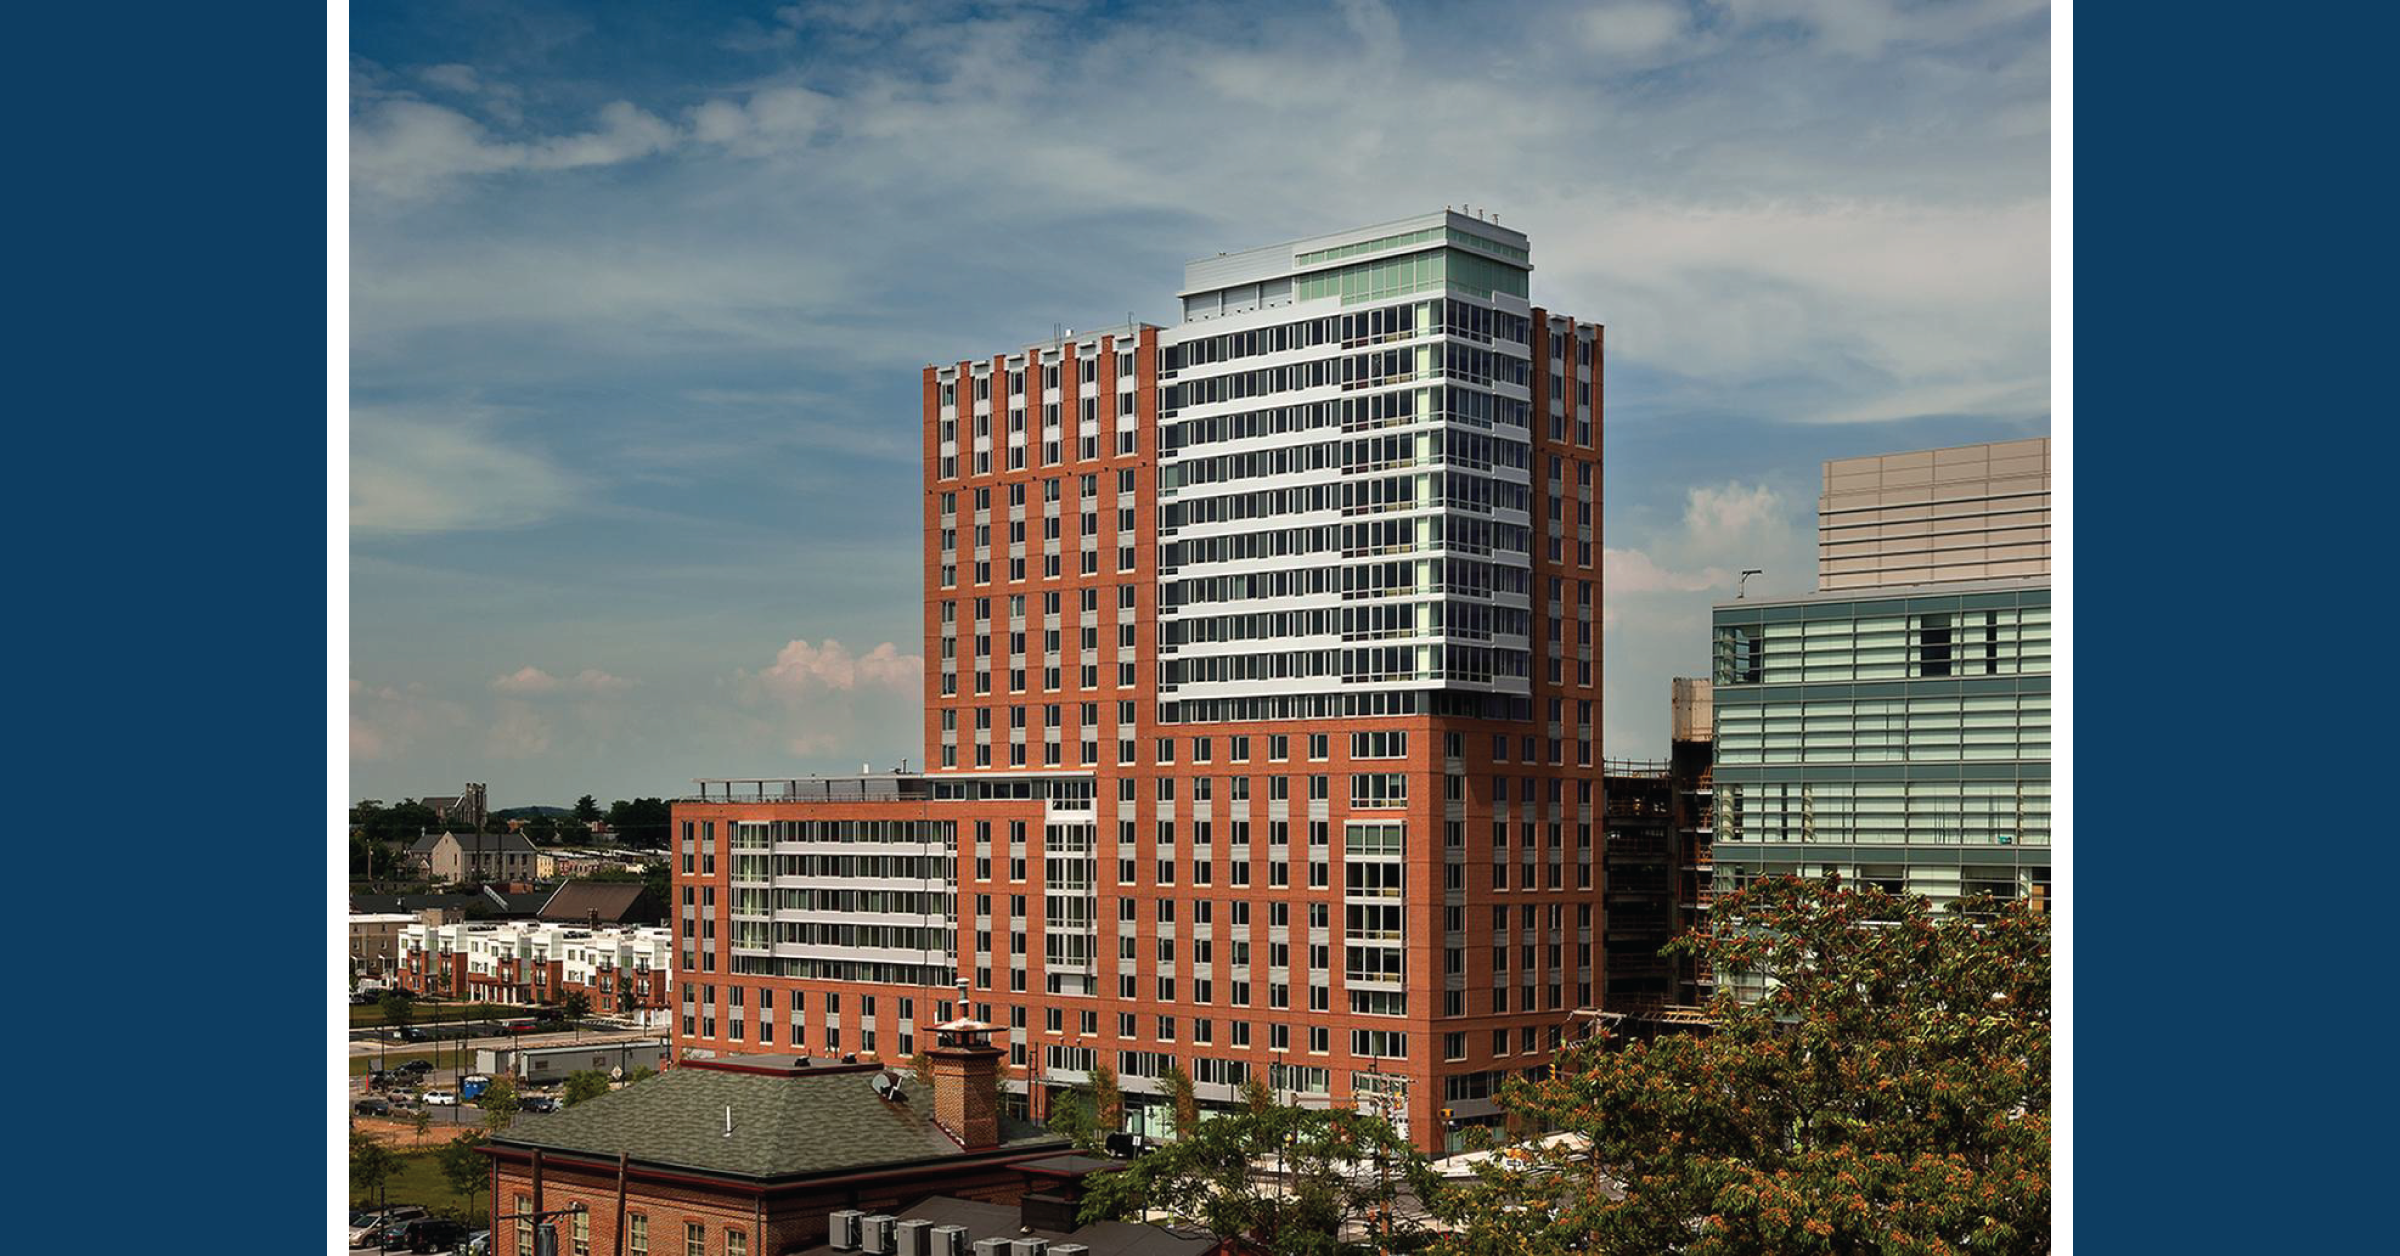 COCM Awarded Management of 929 Apartments in Eager Park located near Johns Hopkins University Medical Campus